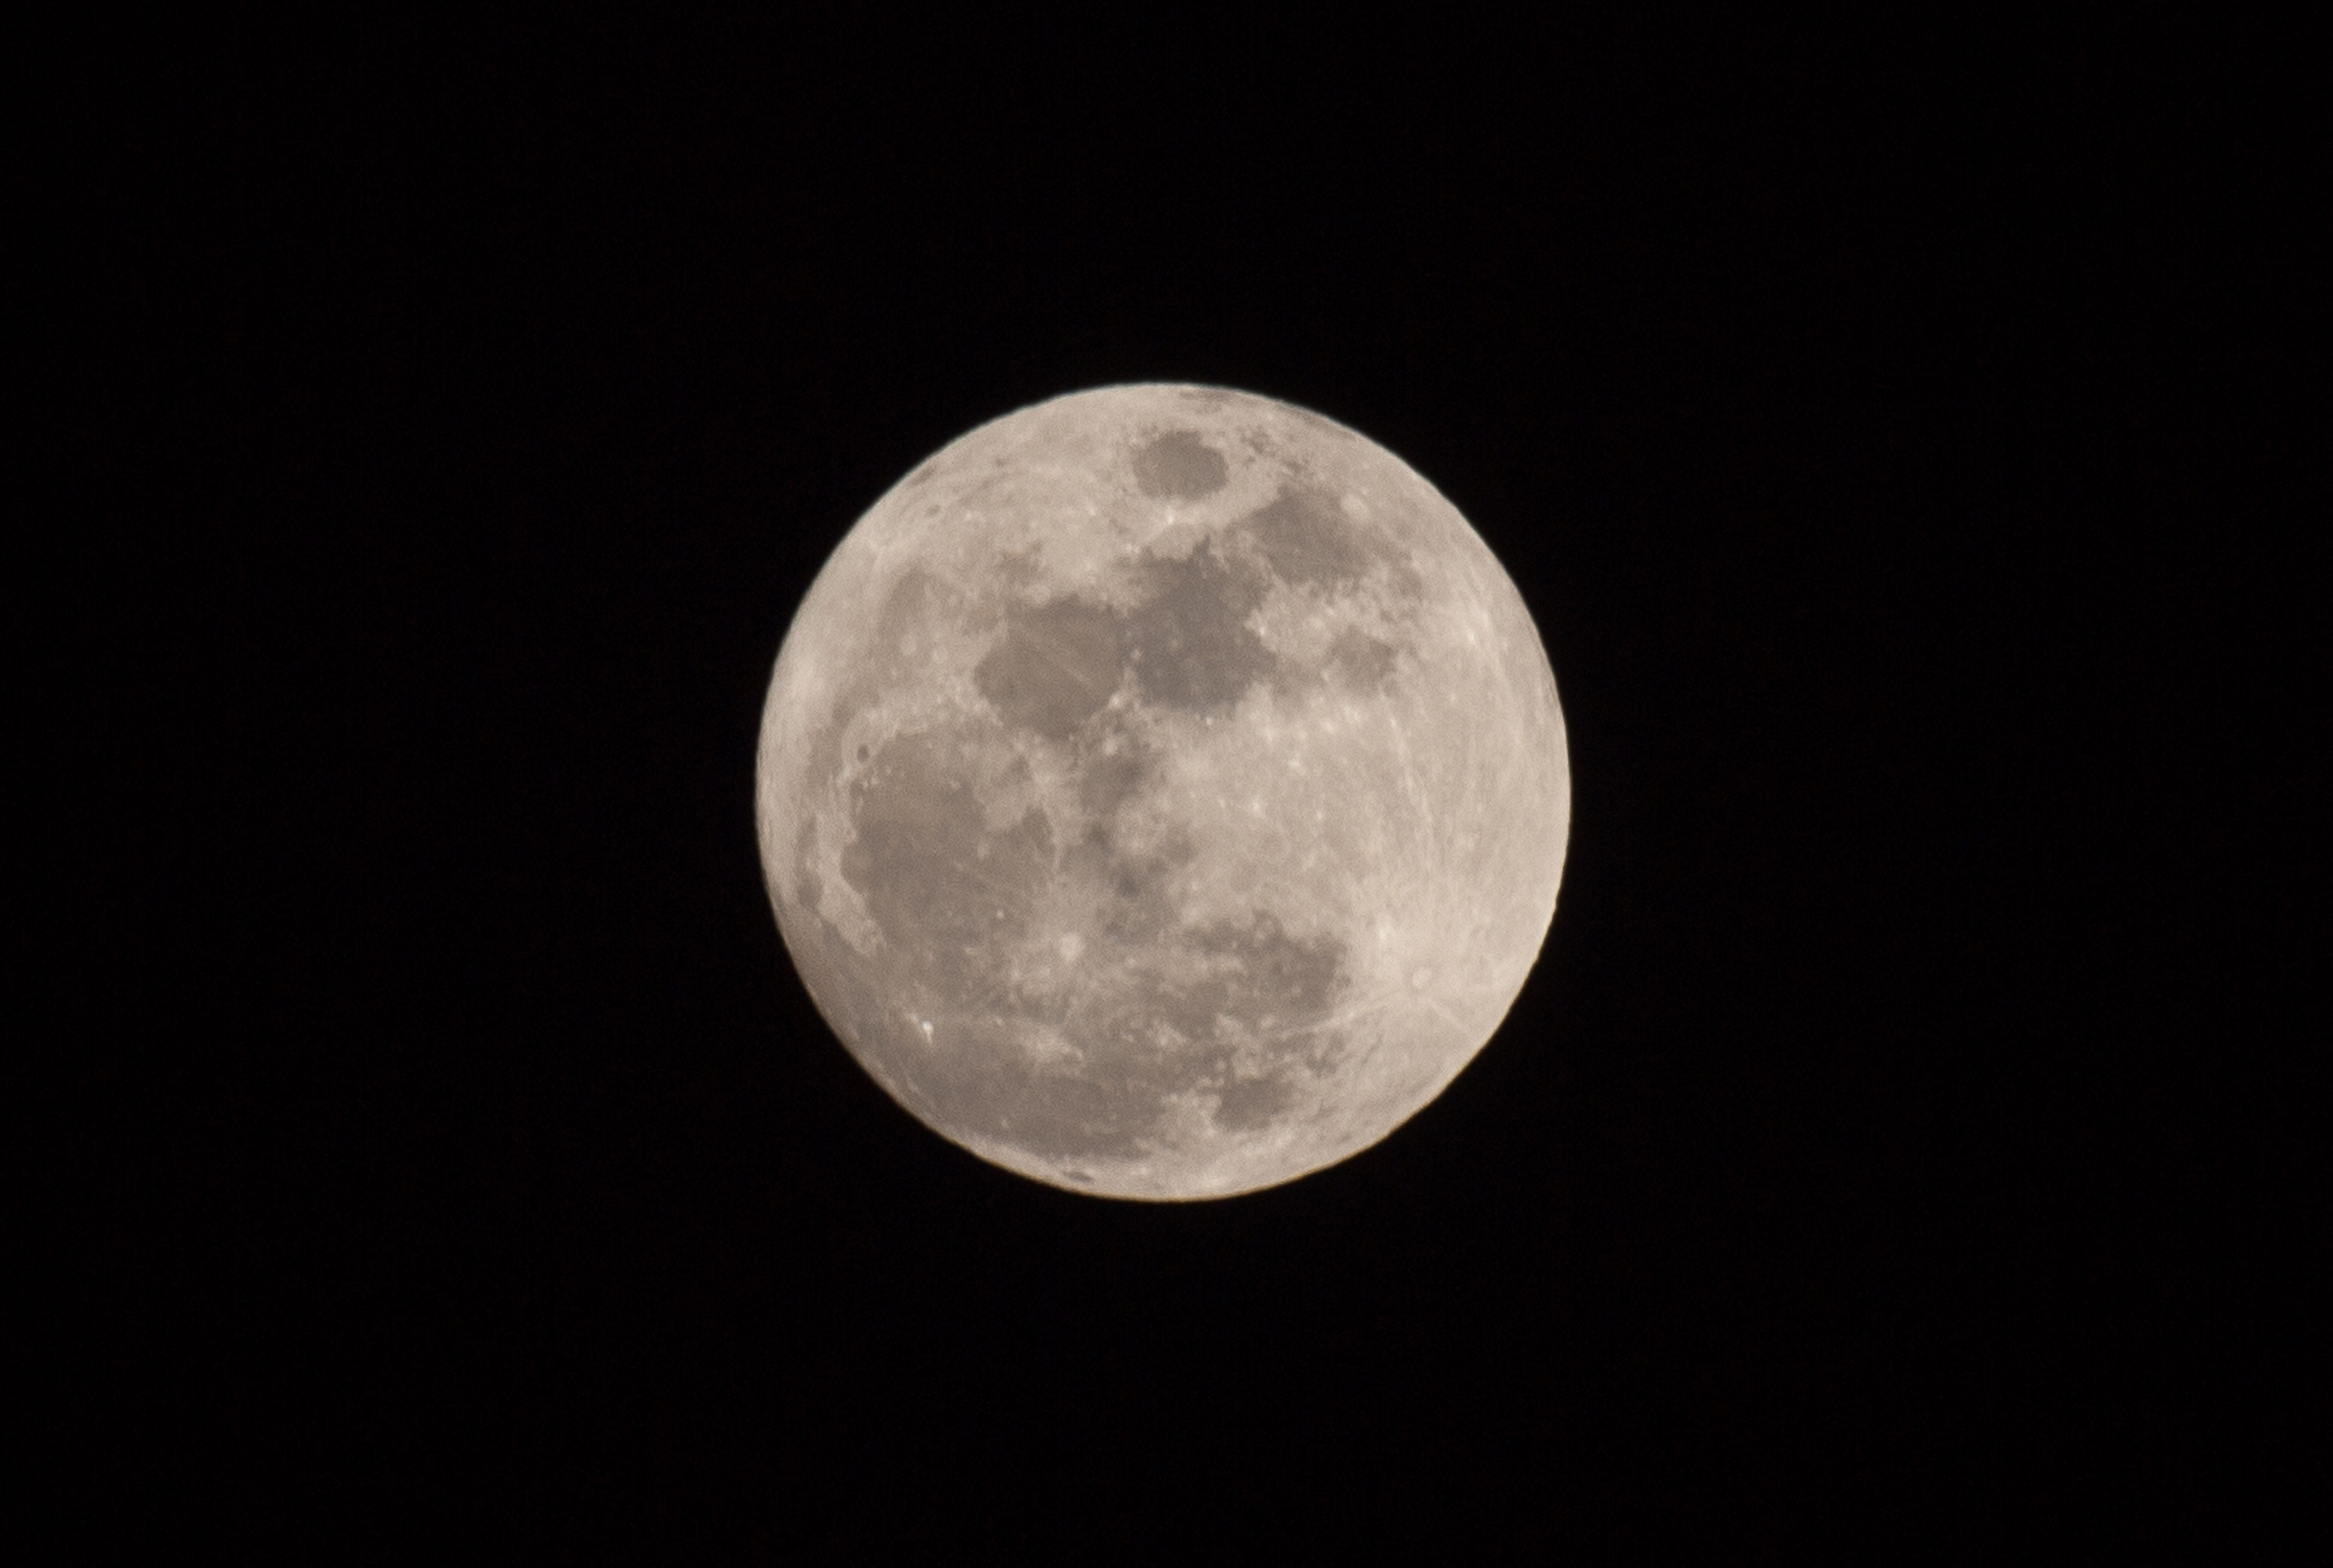 moon, astronomy, full moon, planetary moon, night, moon surface, beauty in nature, tranquil scene, tranquility, scenics, circle, discovery, low angle view, space exploration, nature, sky, sphere, copy space, majestic, dark